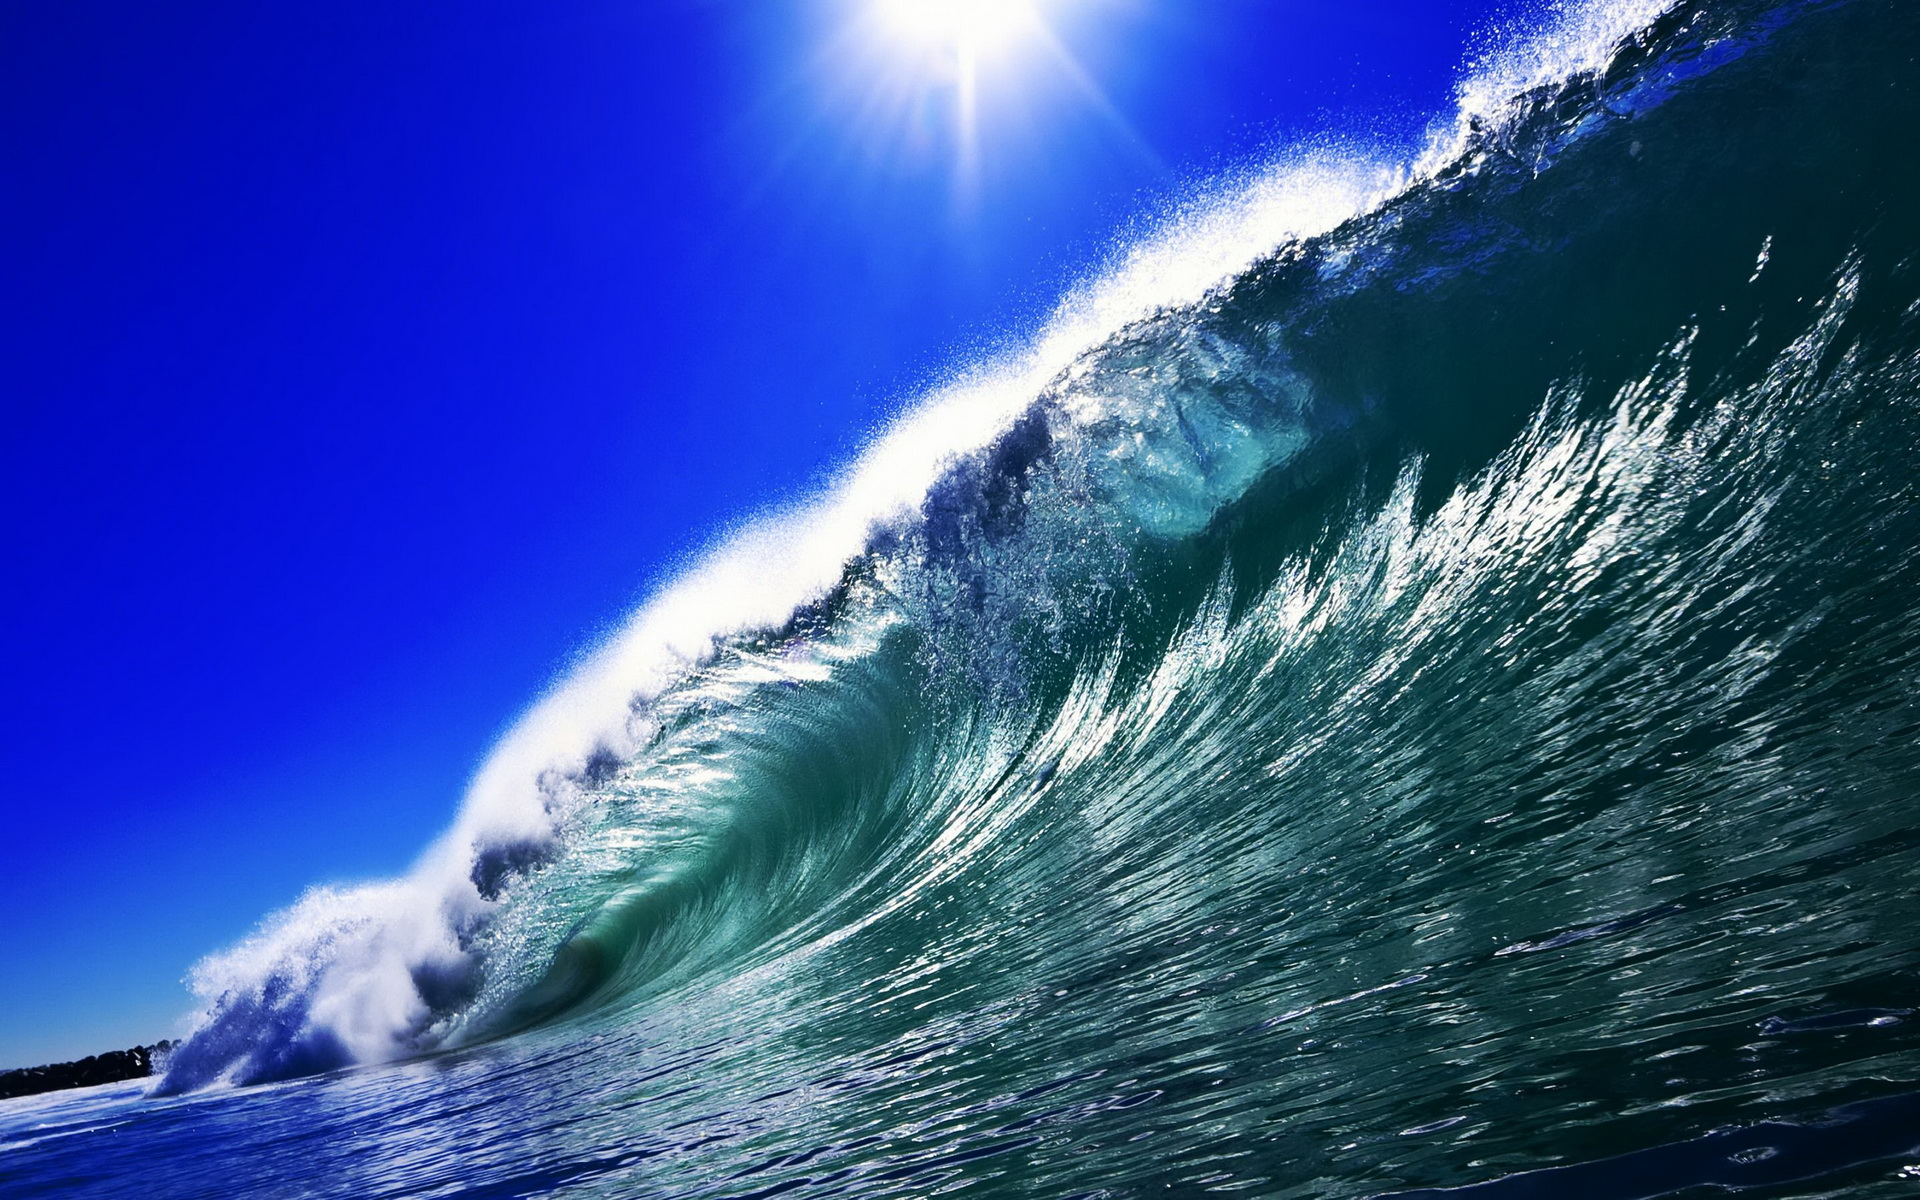 wave wallpaper high definition high quality widescreen